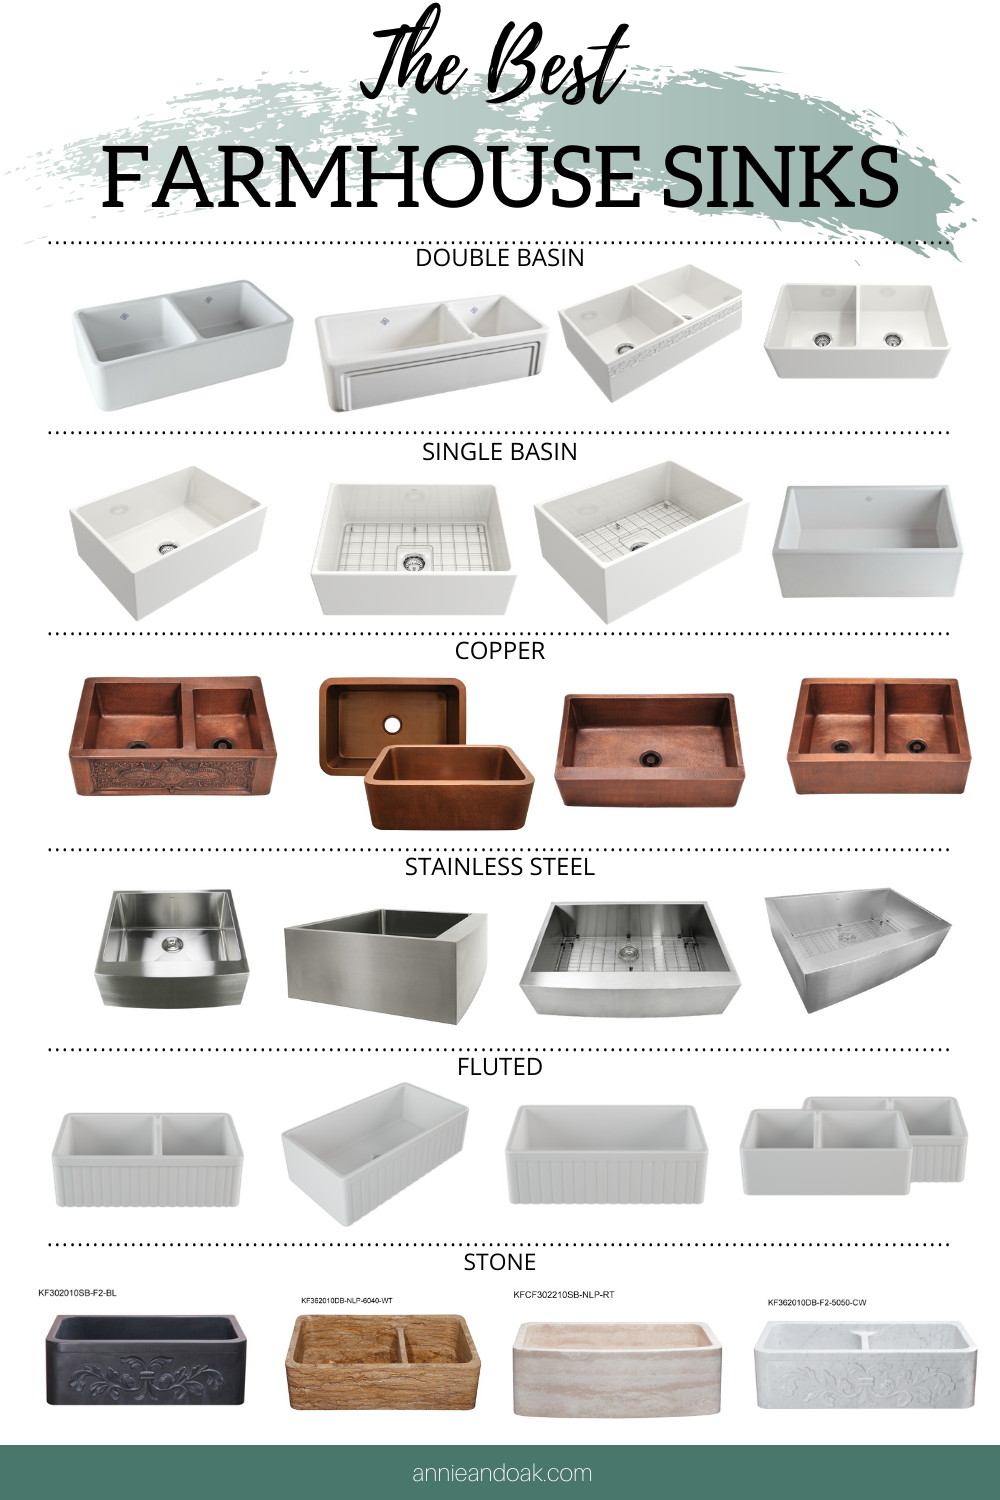 Best Farmhouse Sinks By Annie Oak Shop Our Selection Of The Best